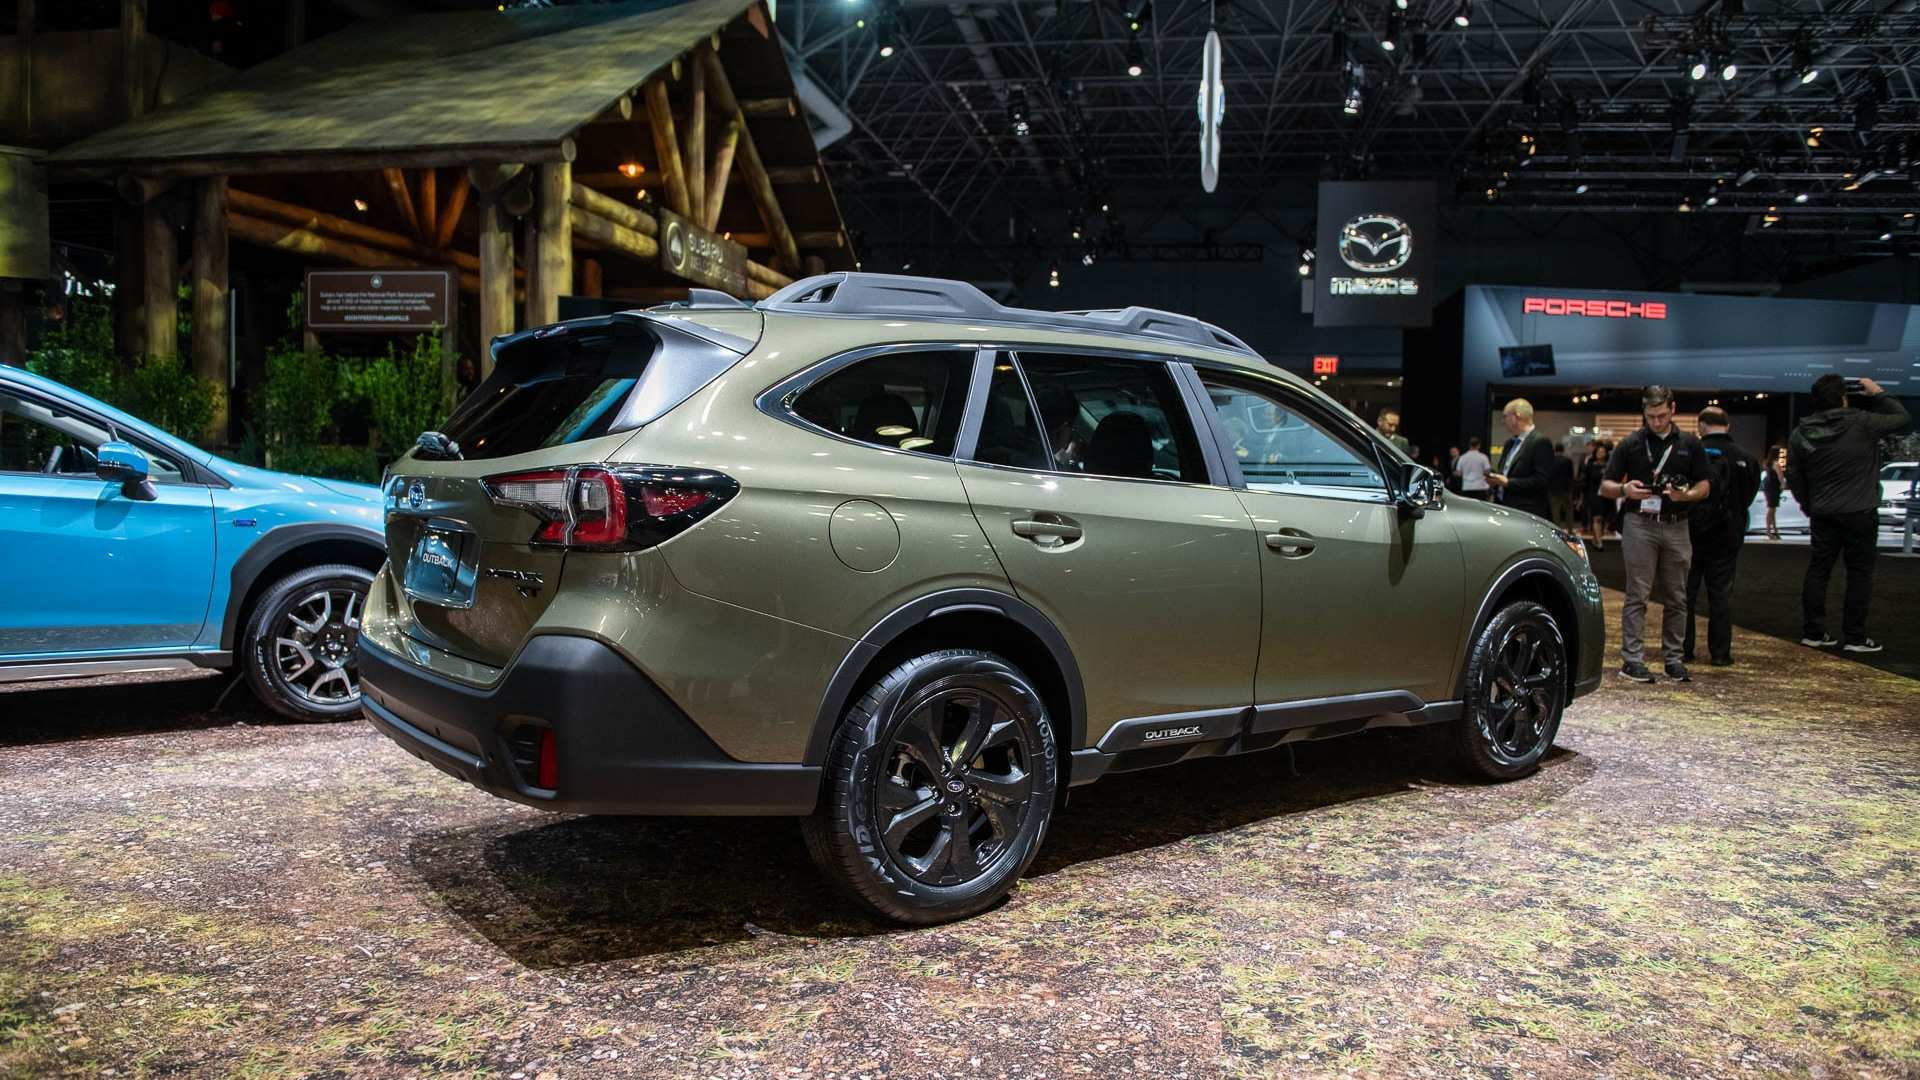 22 Best Subaru Outback 2020 Engine Concept And Review